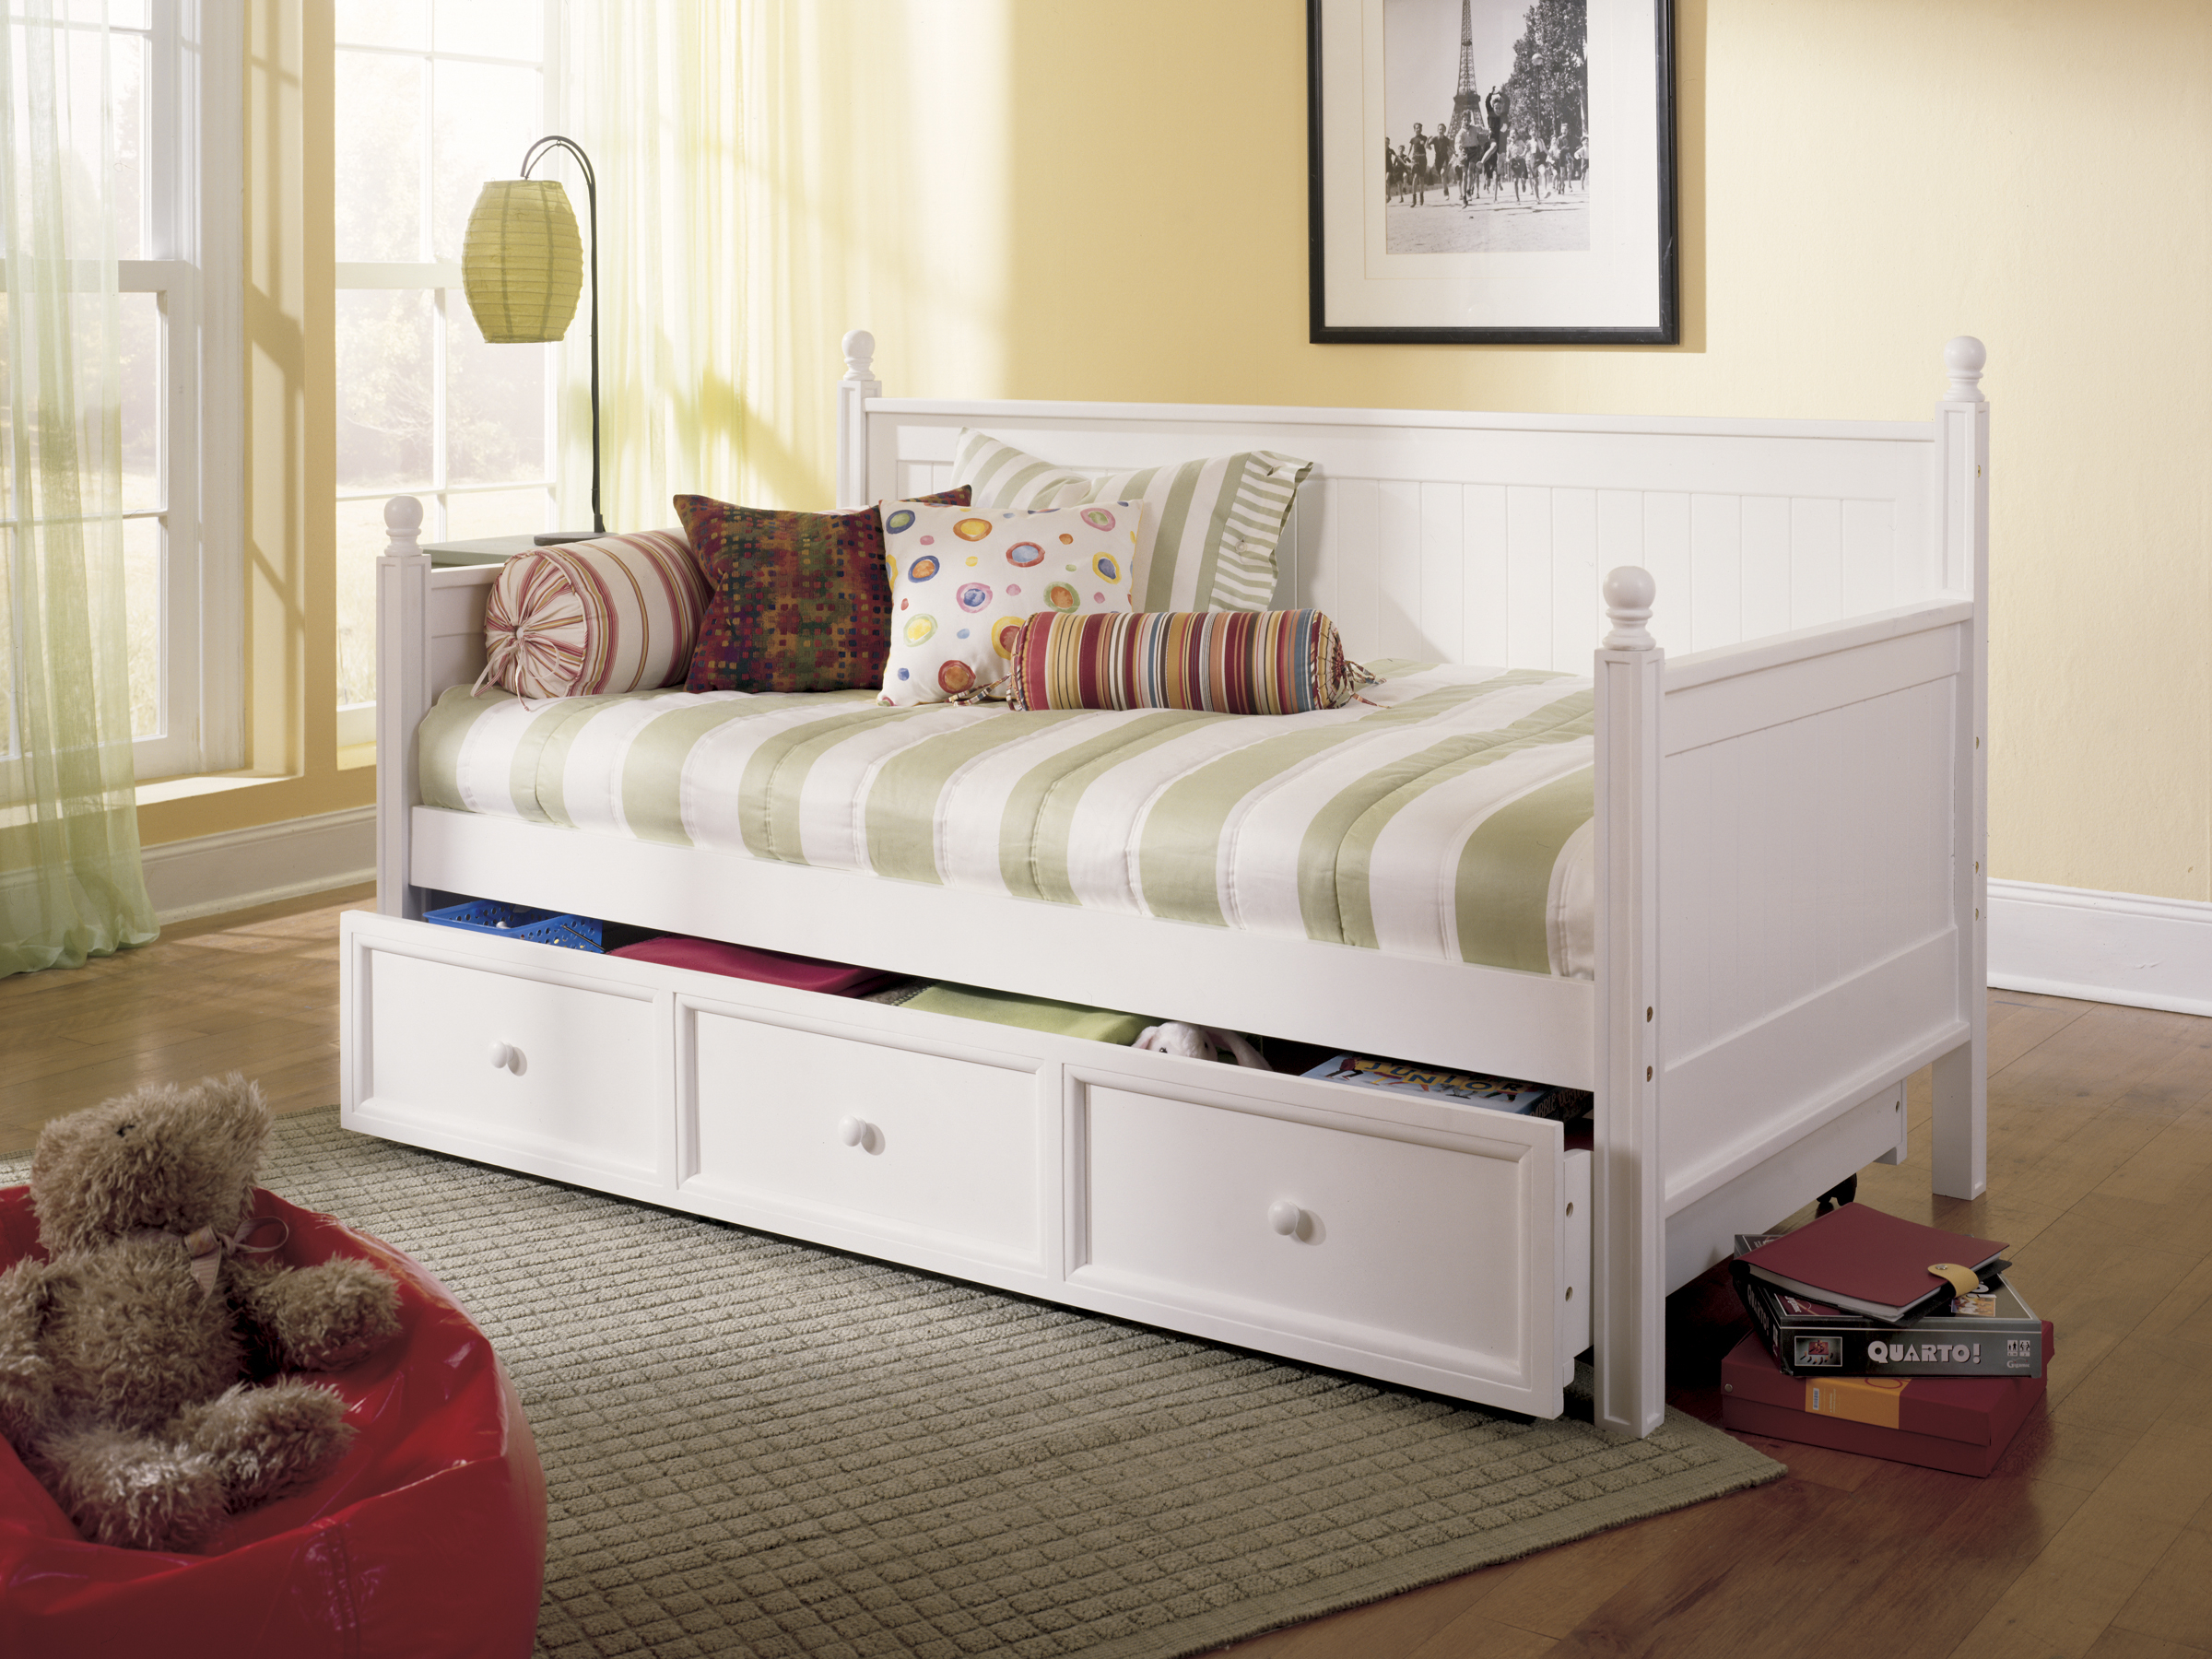 Cool brimnes daybed for small bedroom ideas with ikea brimnes daybed